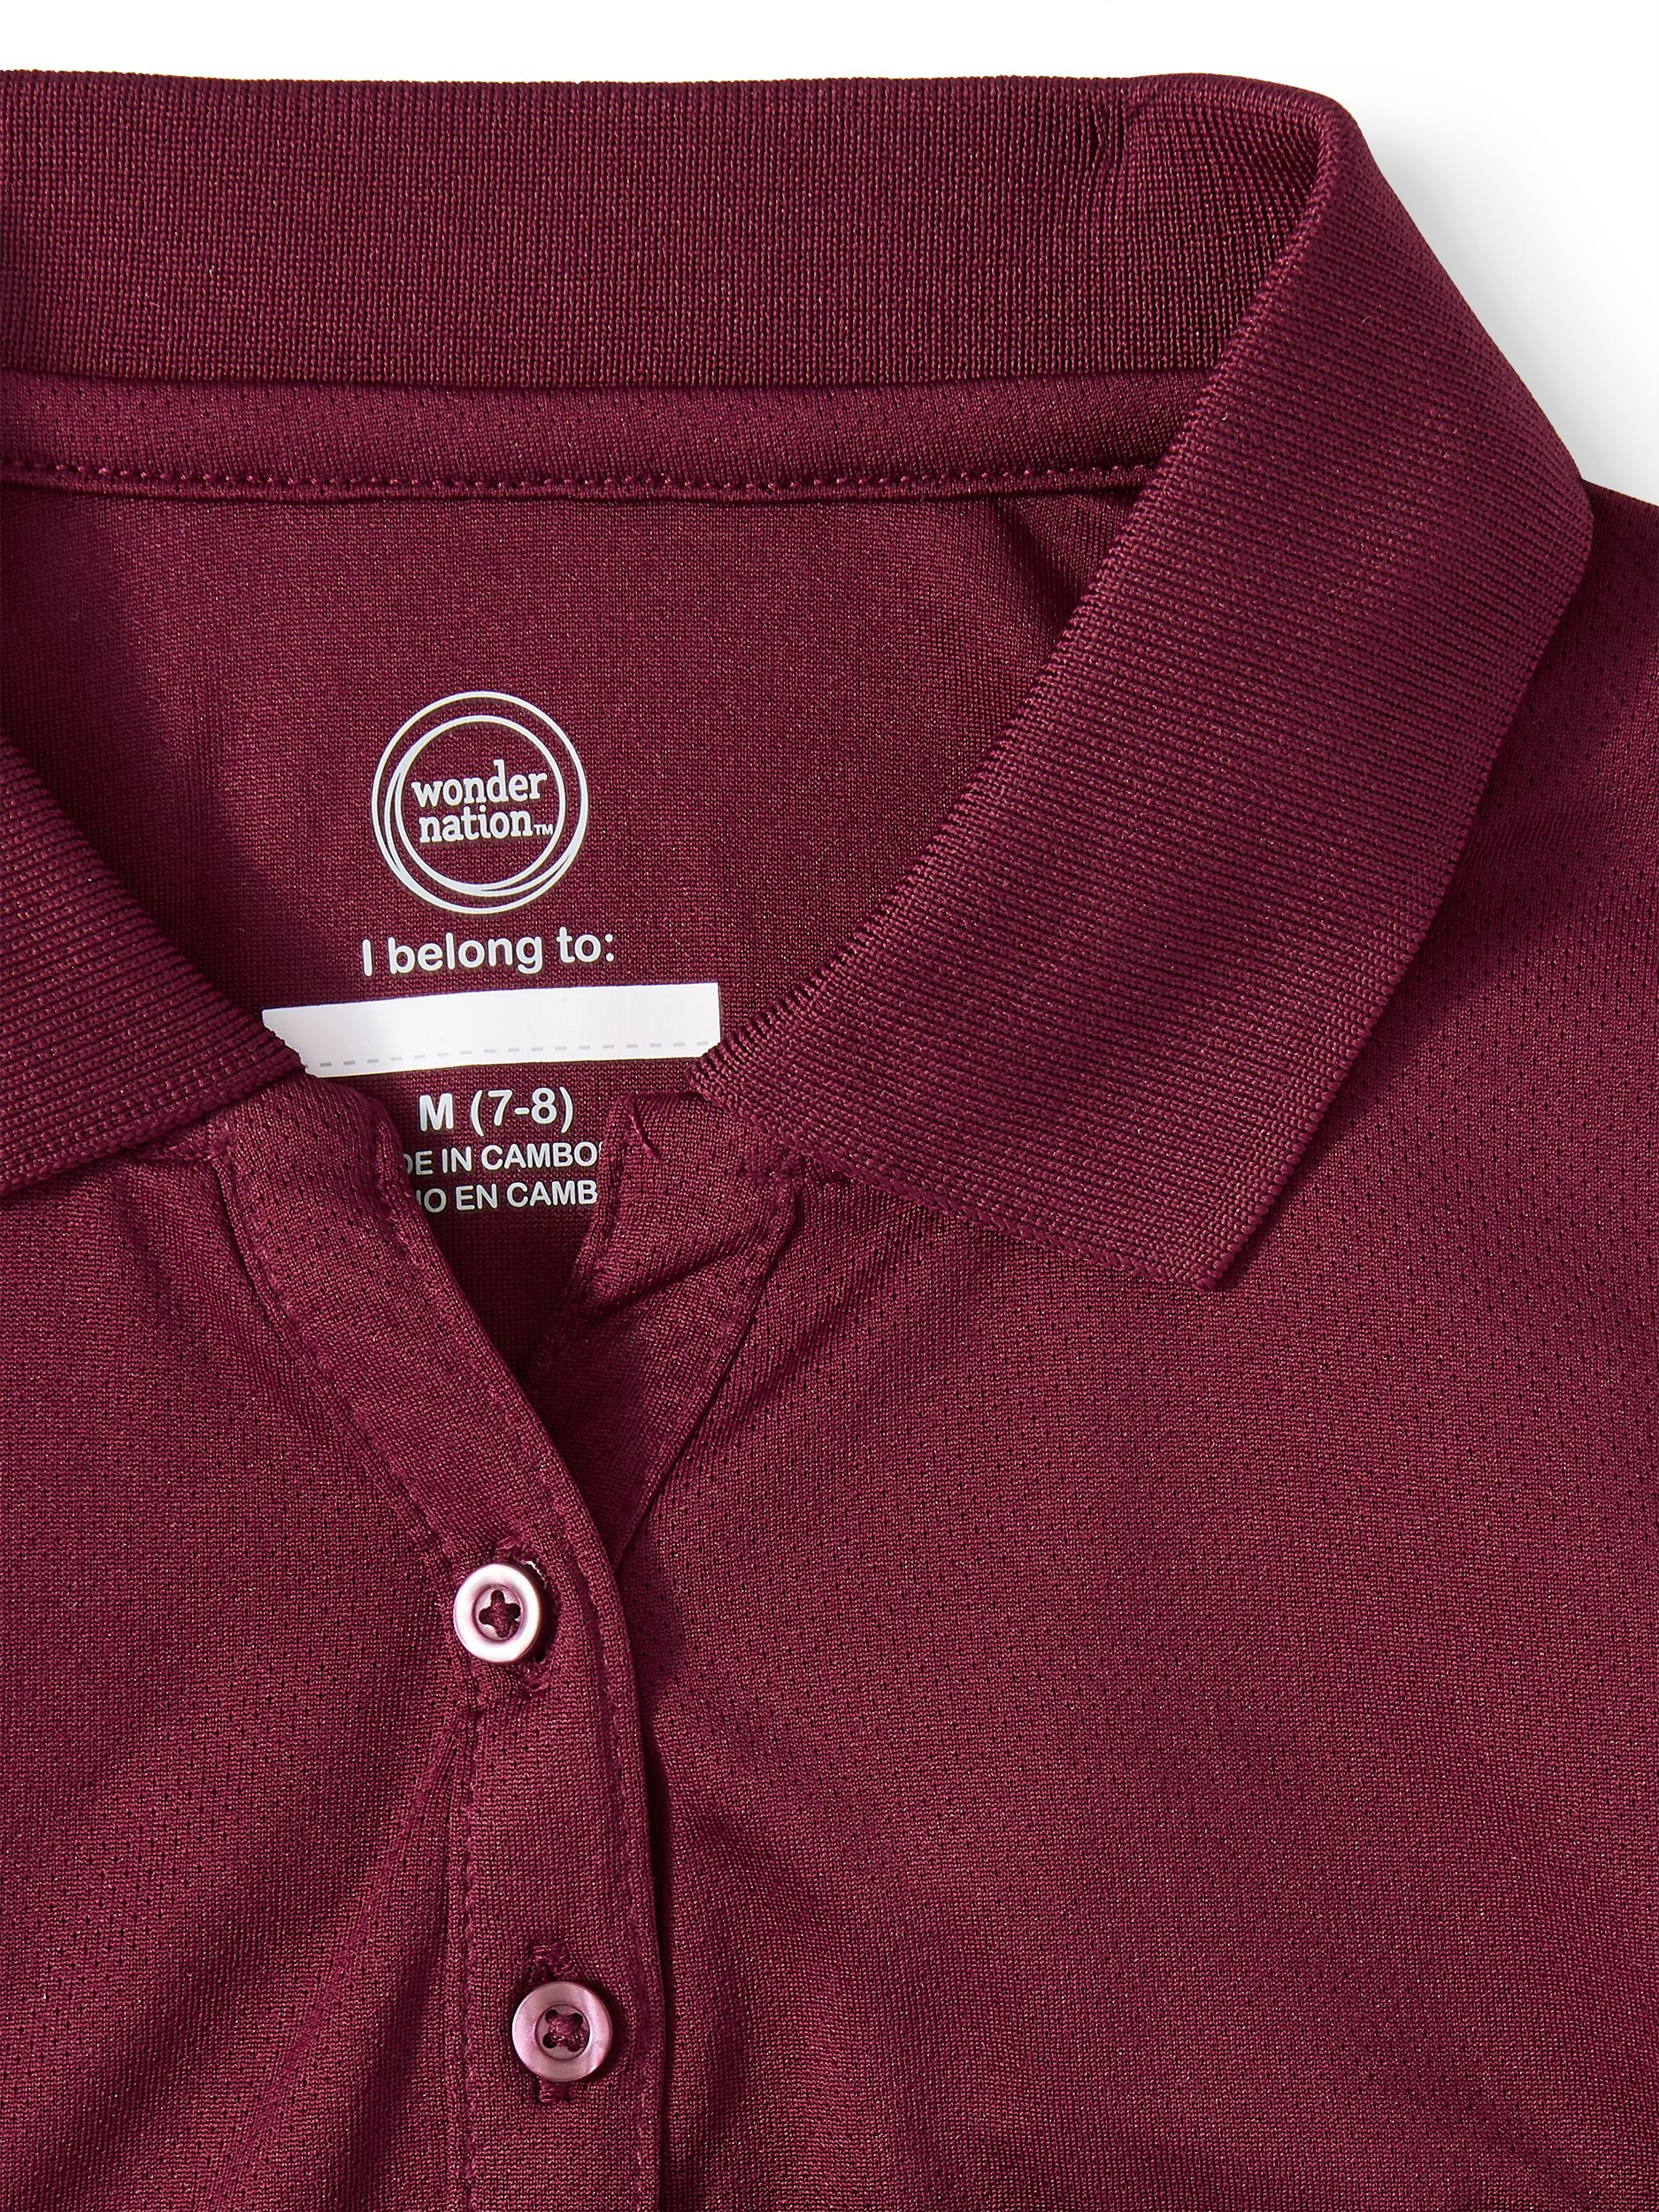 Mehroon Color Details about  /  Men/'s Perfect Fit Polo Tshirt L-Size  Running